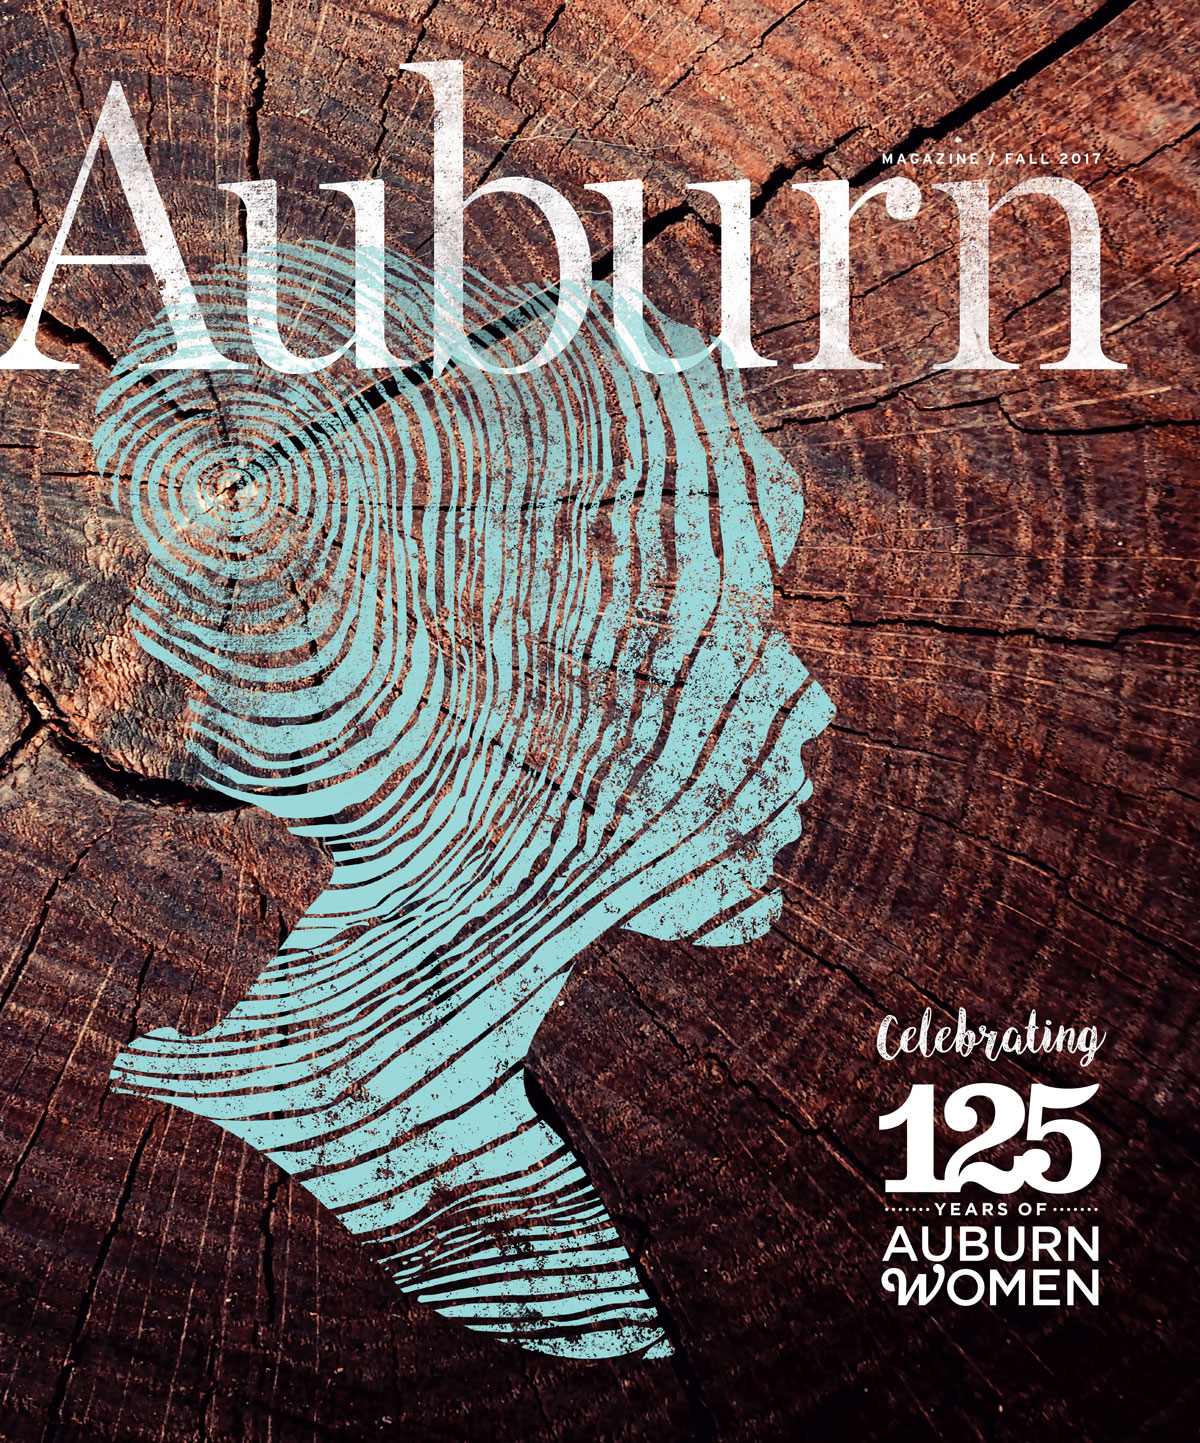 The cover of the Fall Issue for Auburn Magazine celebrating 125 Years of Auburn Women